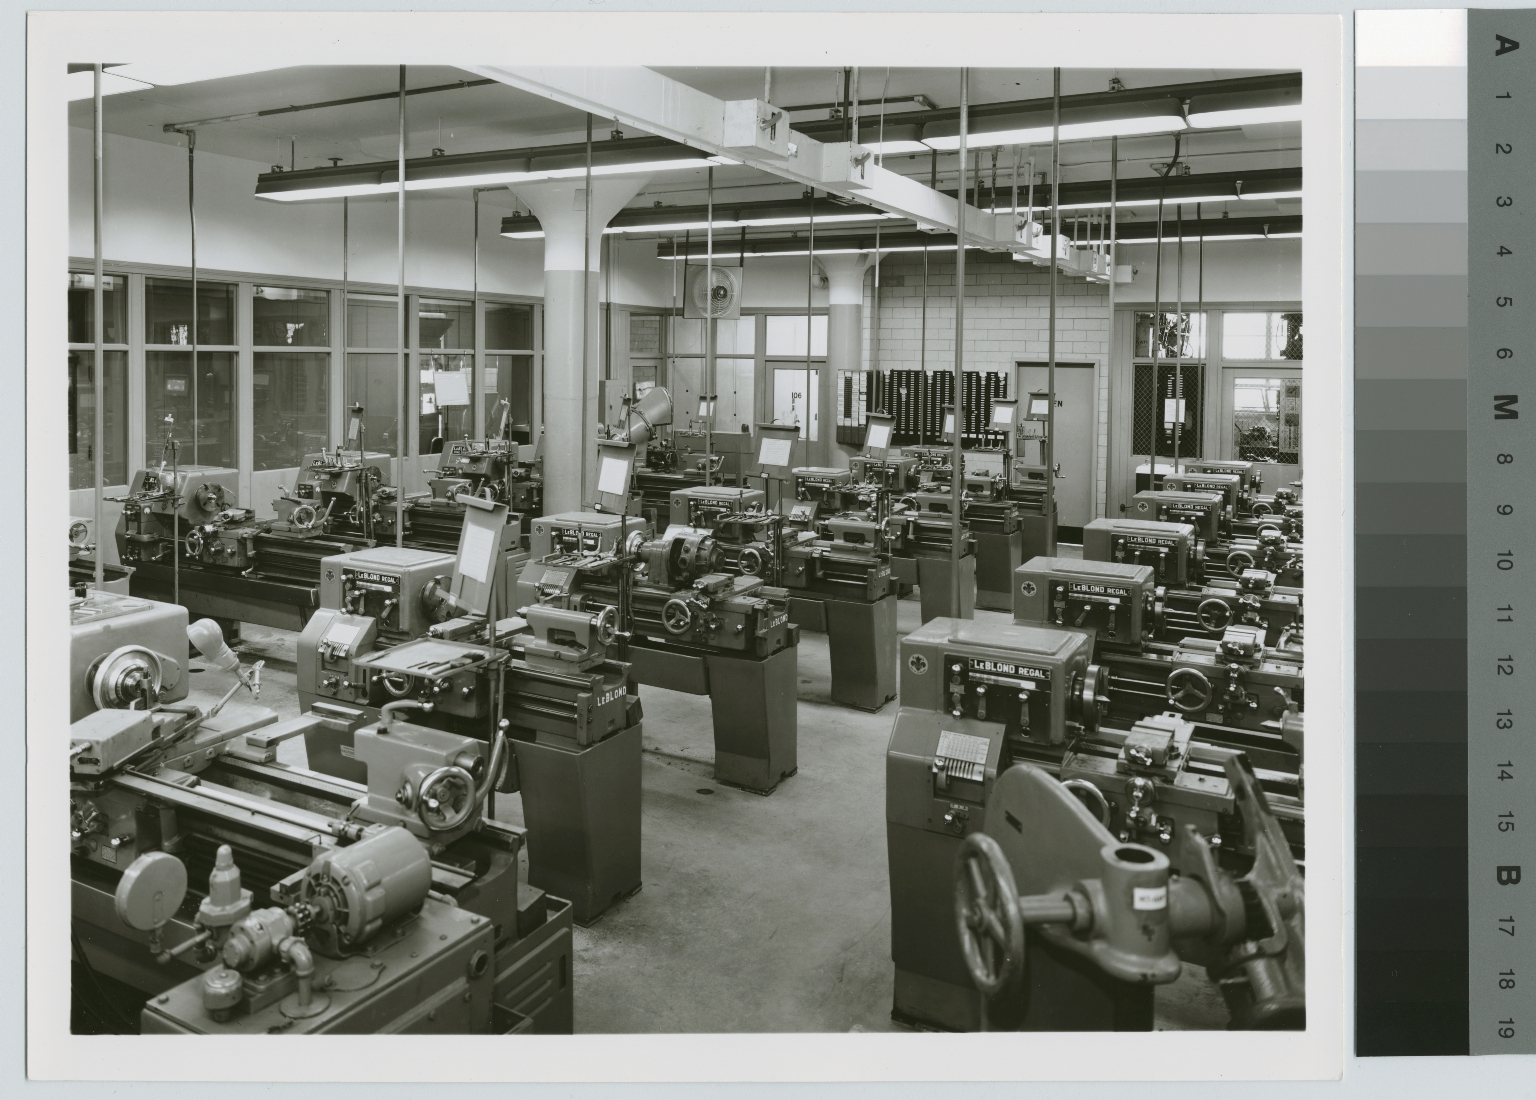 Equipment room, Mechanical Department, George H. Clark Building, Rochester Institute of Technology